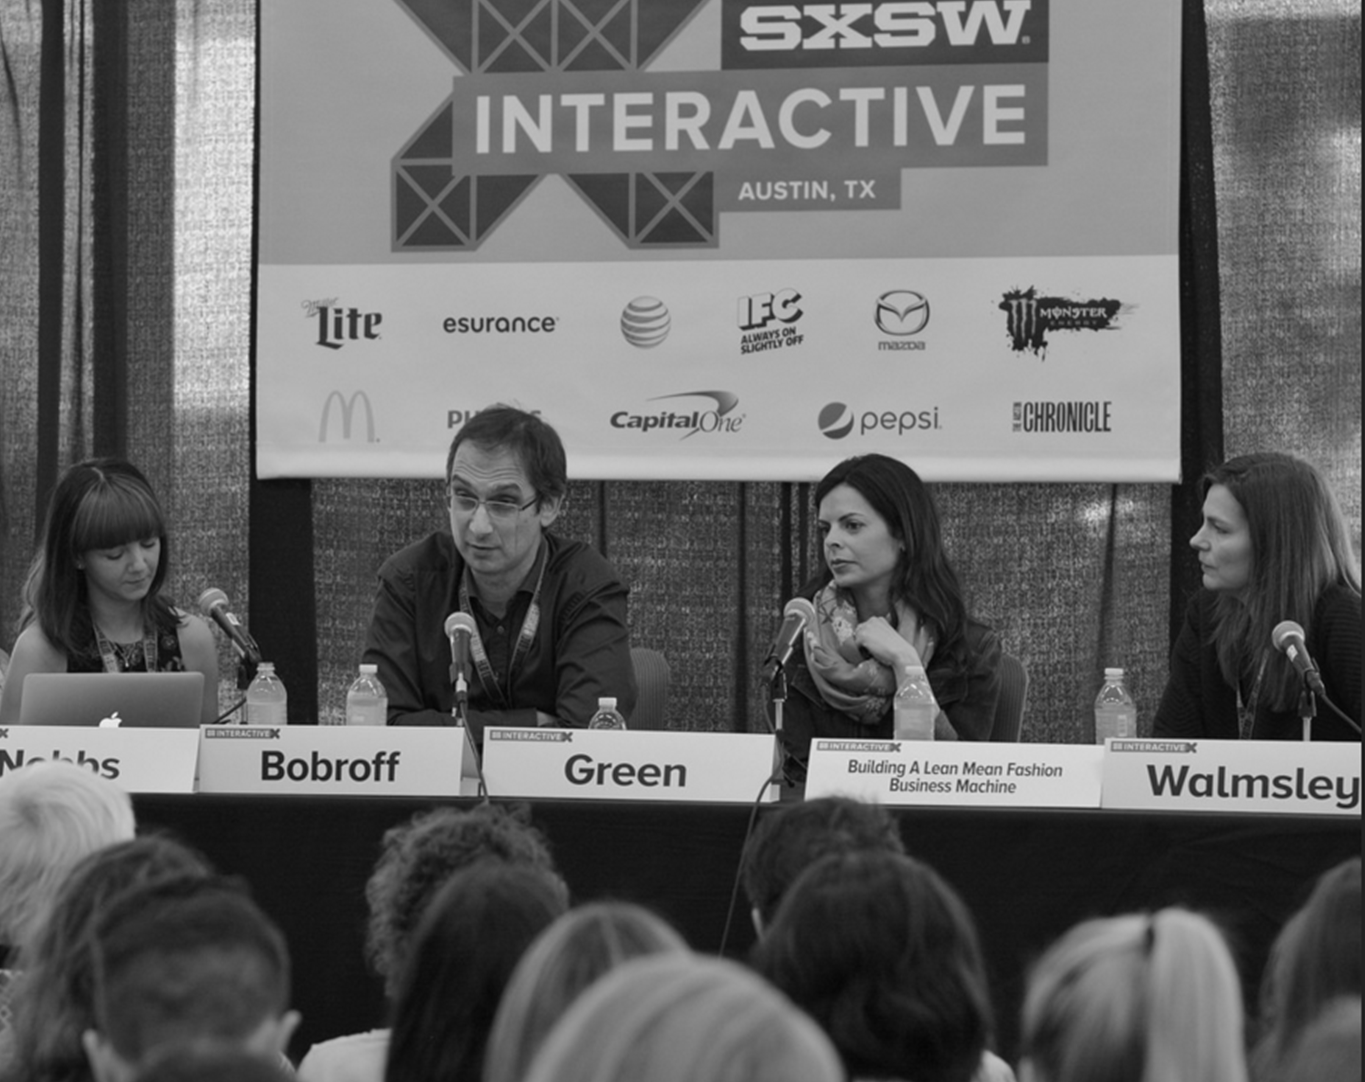 SXSW Panel Moderator: Building a Lean Mean Fashion Machine with ASOS, Google and Topshop (2015)